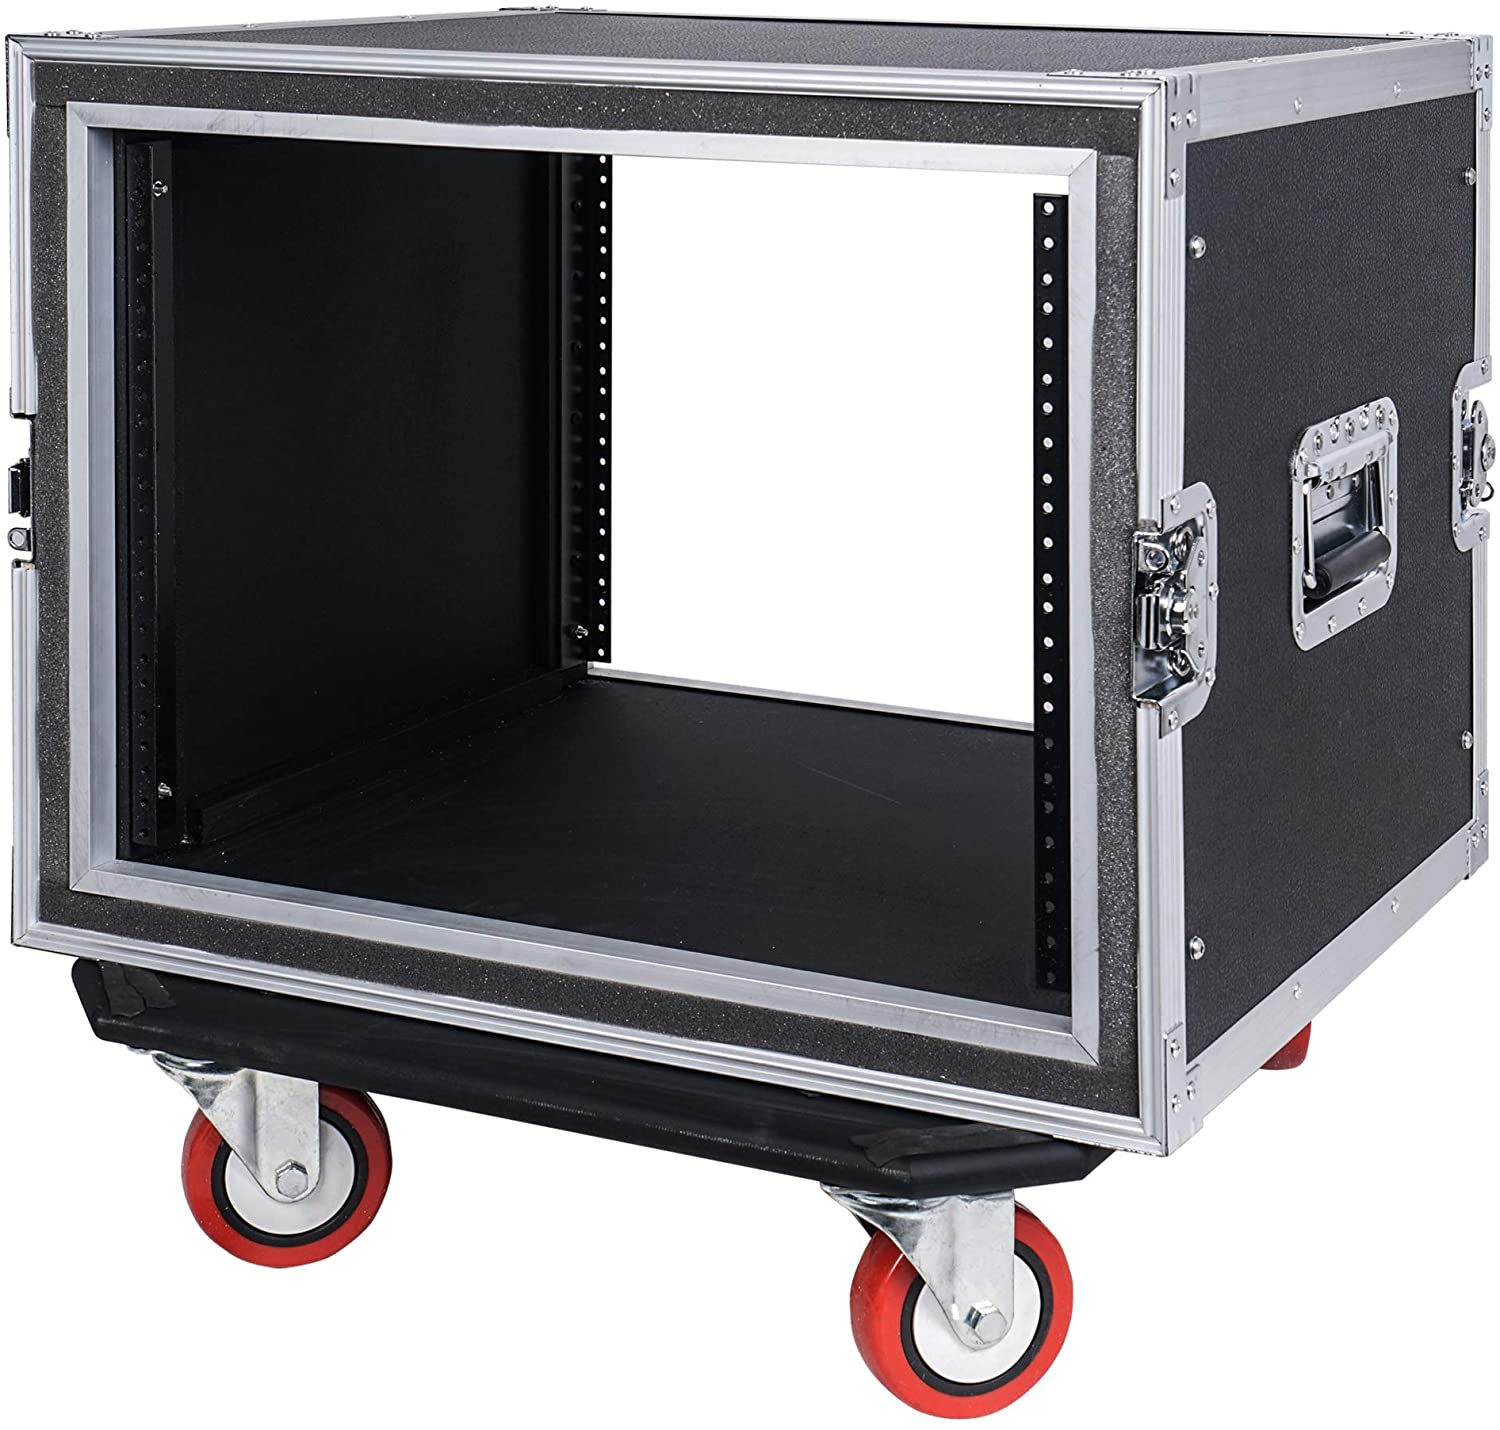 """Sound Town Shock Mount 8U ATA Rack Case with 17"""" Rackable Depth and Casters, 8-Space Size (STRC-SP8UW)"""